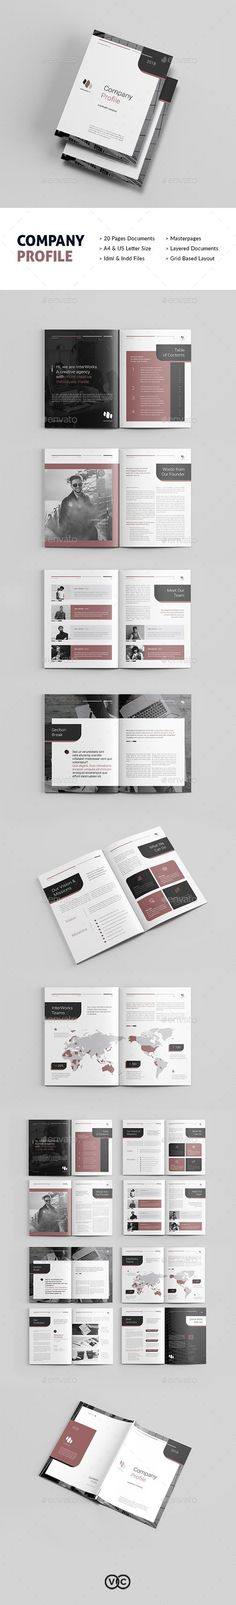 Company Profile Corporate Profile, Corporate Brochure, Business Brochure, Company Profile Template, Company Profile Design, Leaflet Design, Booklet Design, Travel Brochure Template, Brochure Design